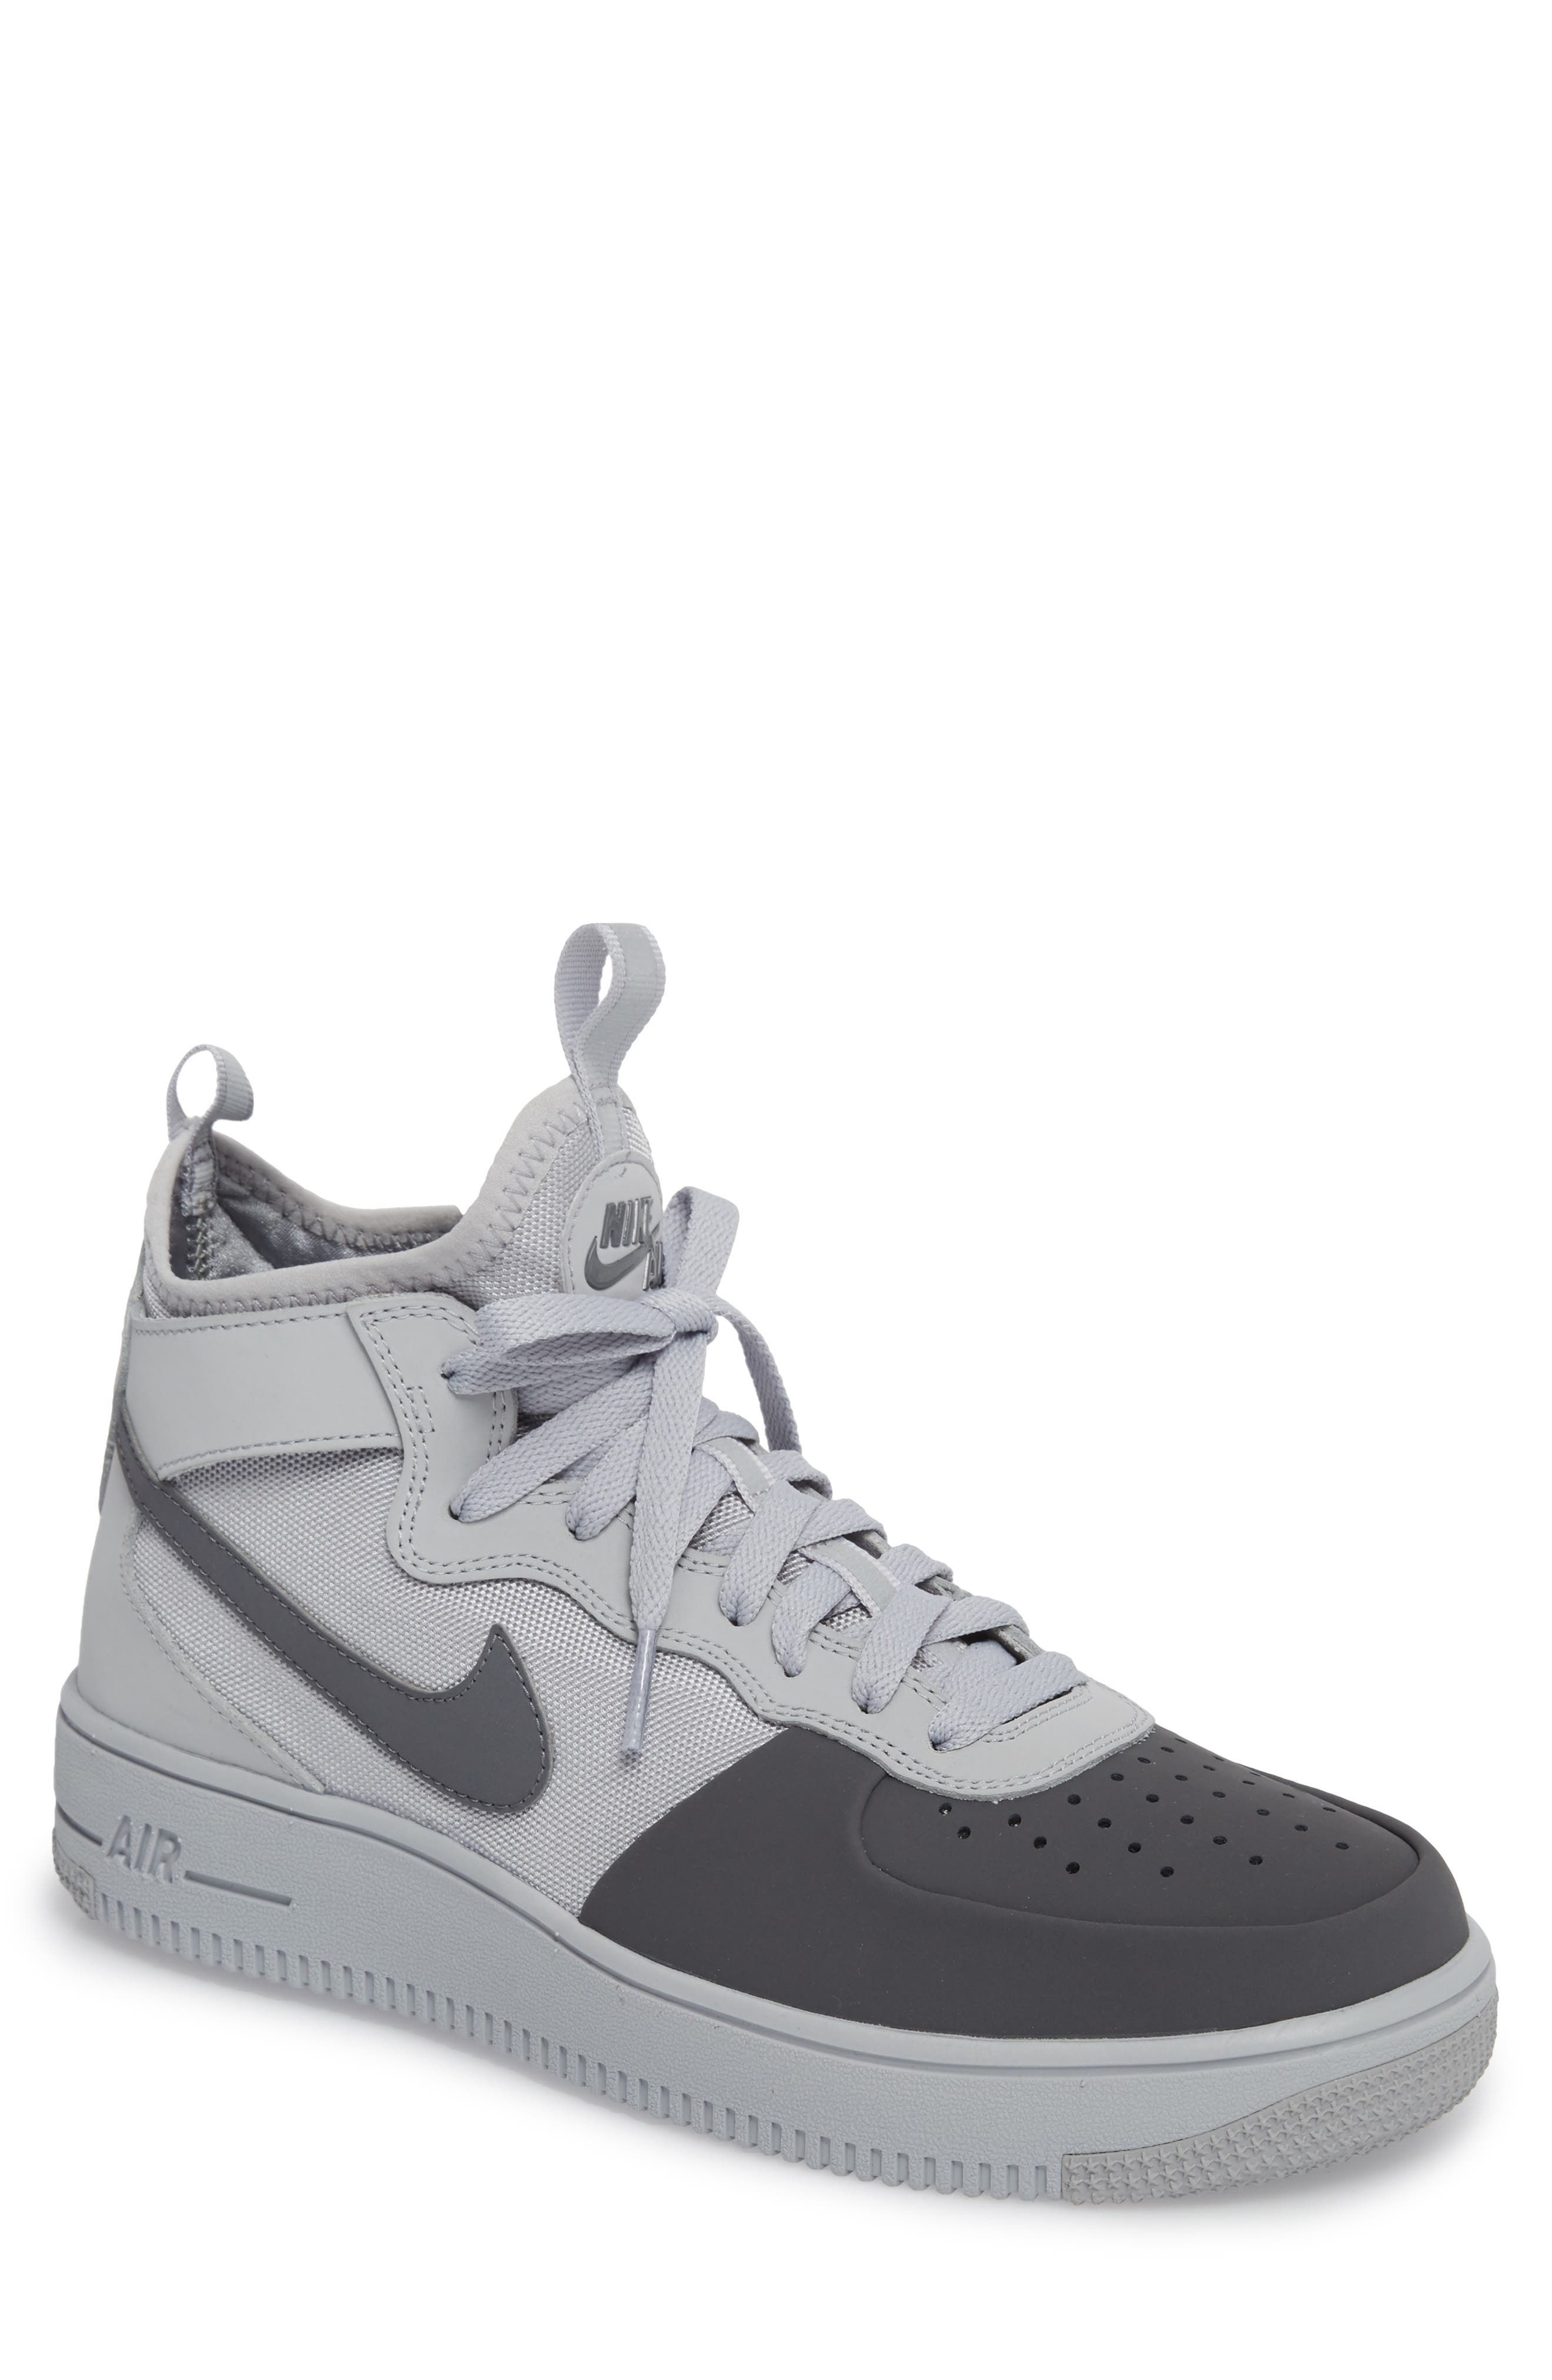 Air Force 1 Ultraforce Mid Tech Sneaker,                             Main thumbnail 1, color,                             Wolf Grey/ Dark Grey